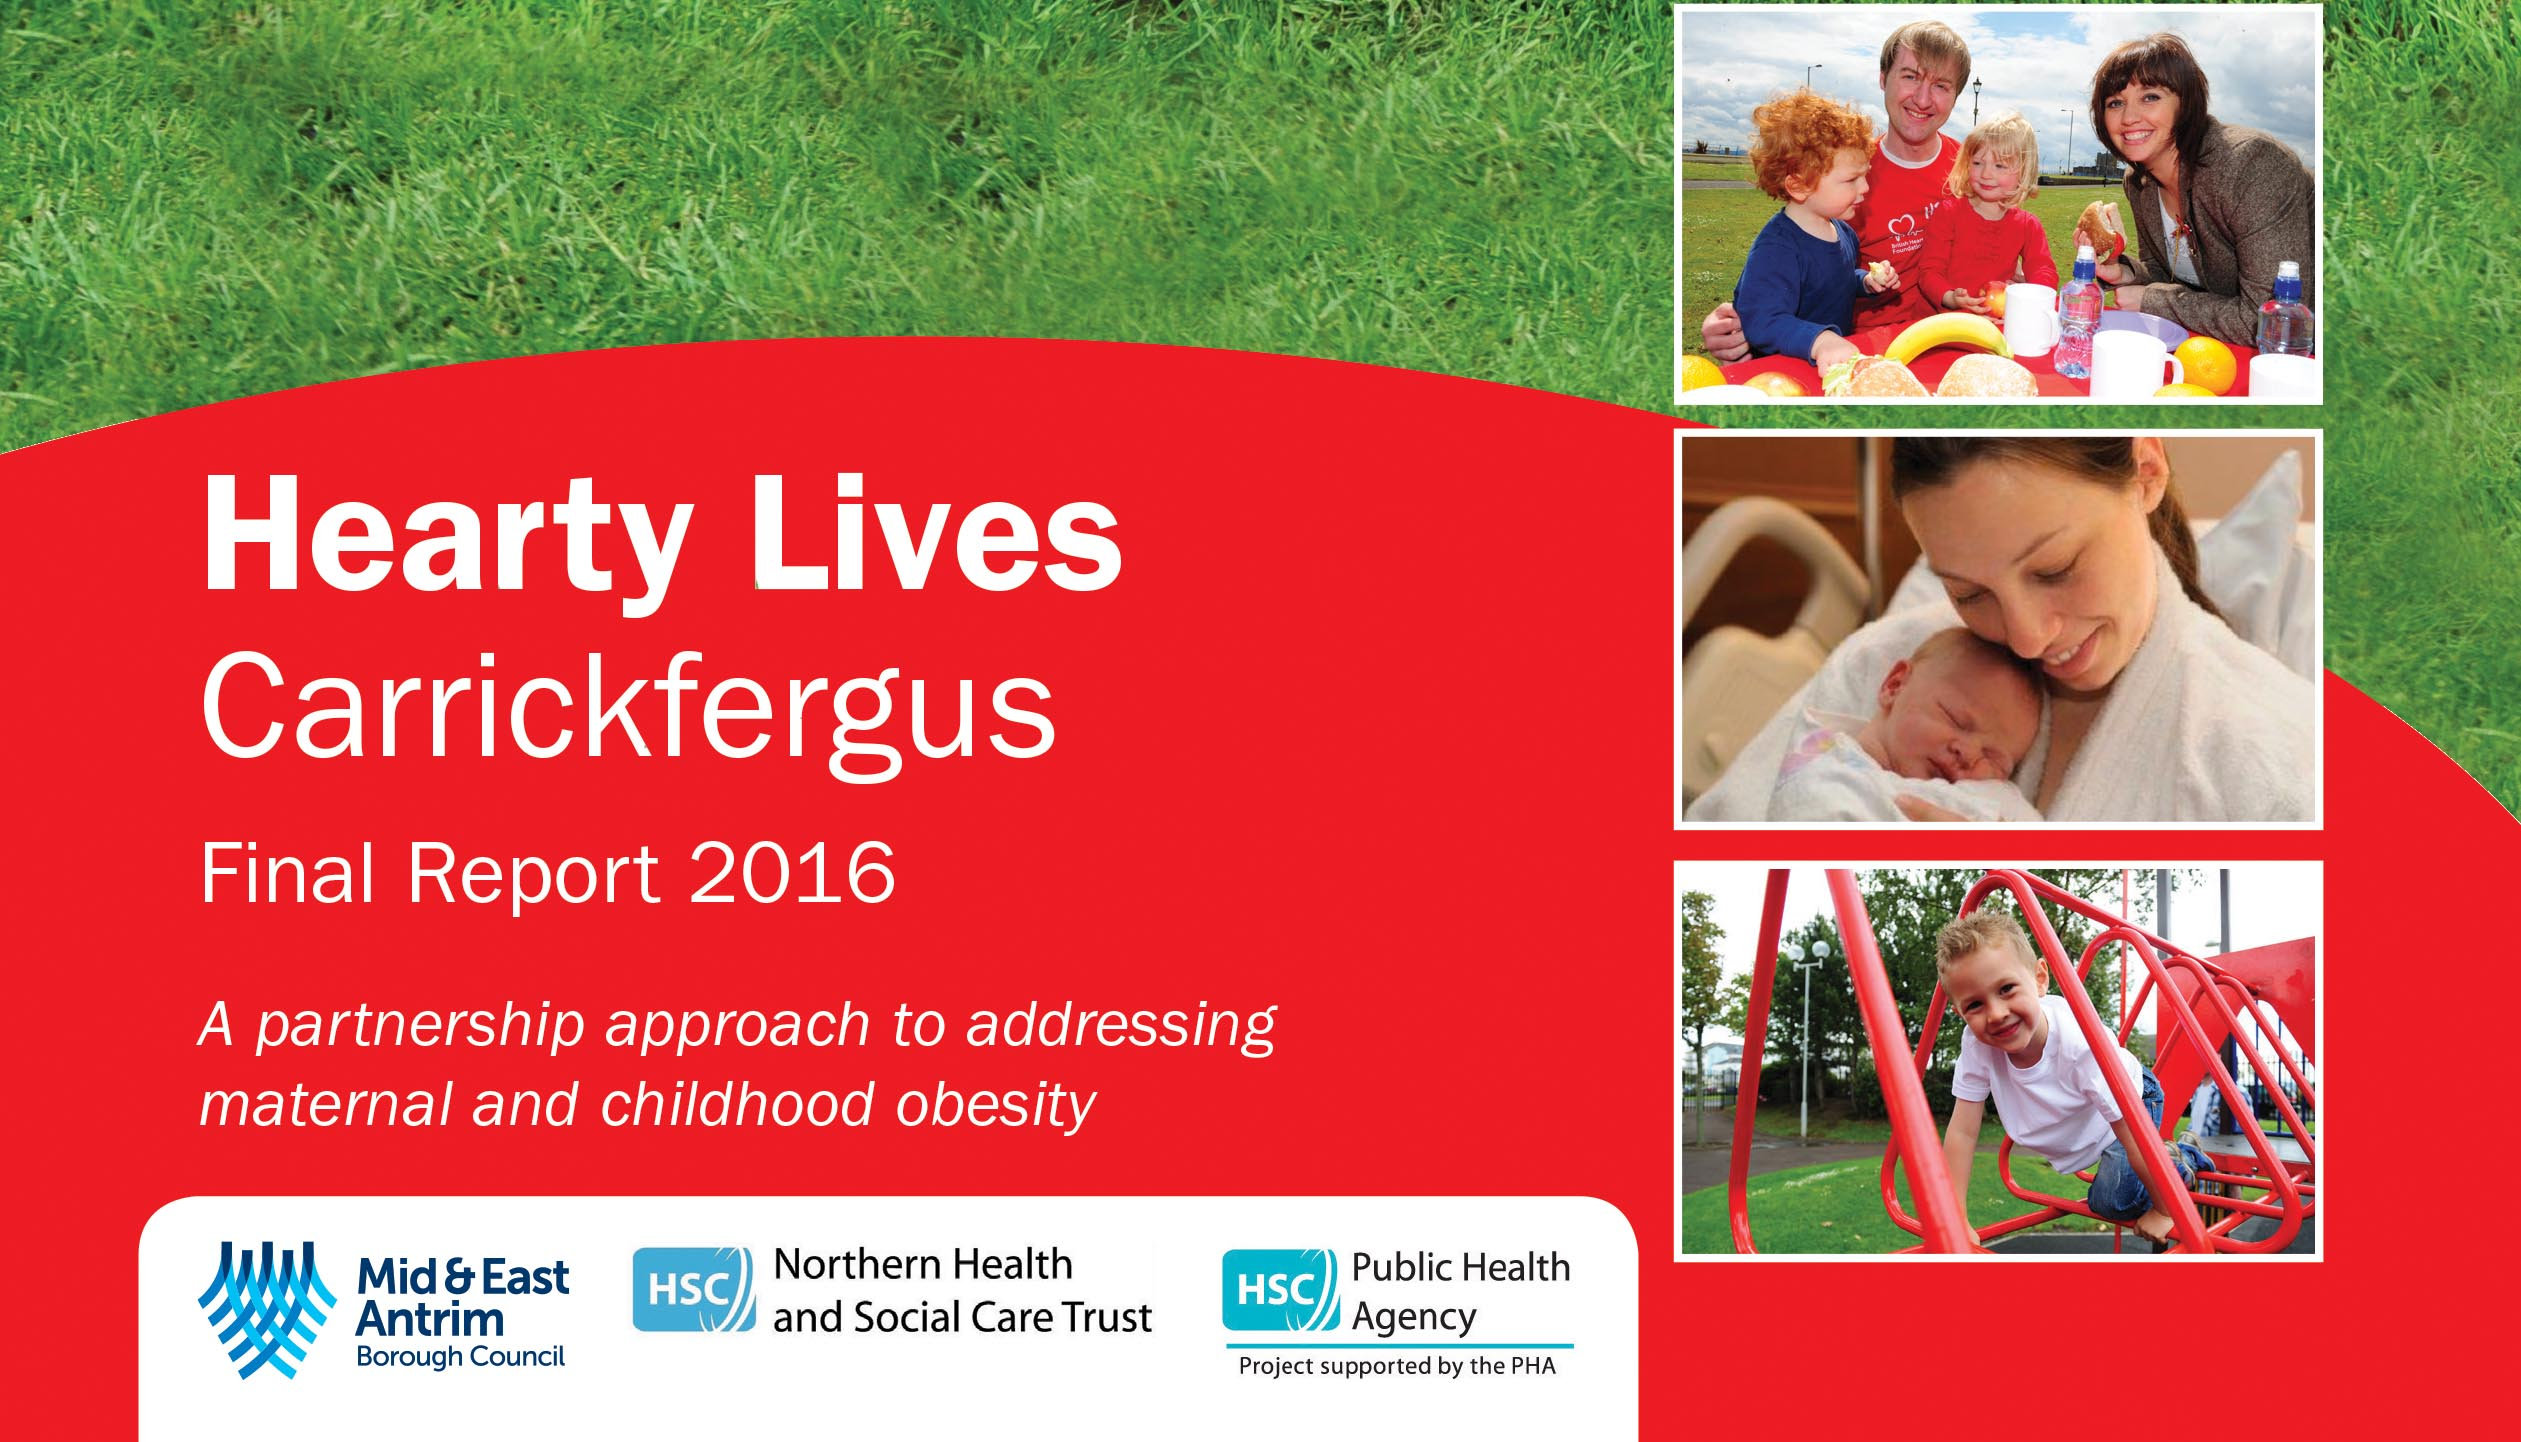 Image of the Hearty Lives Fina Report 2016 coverpage